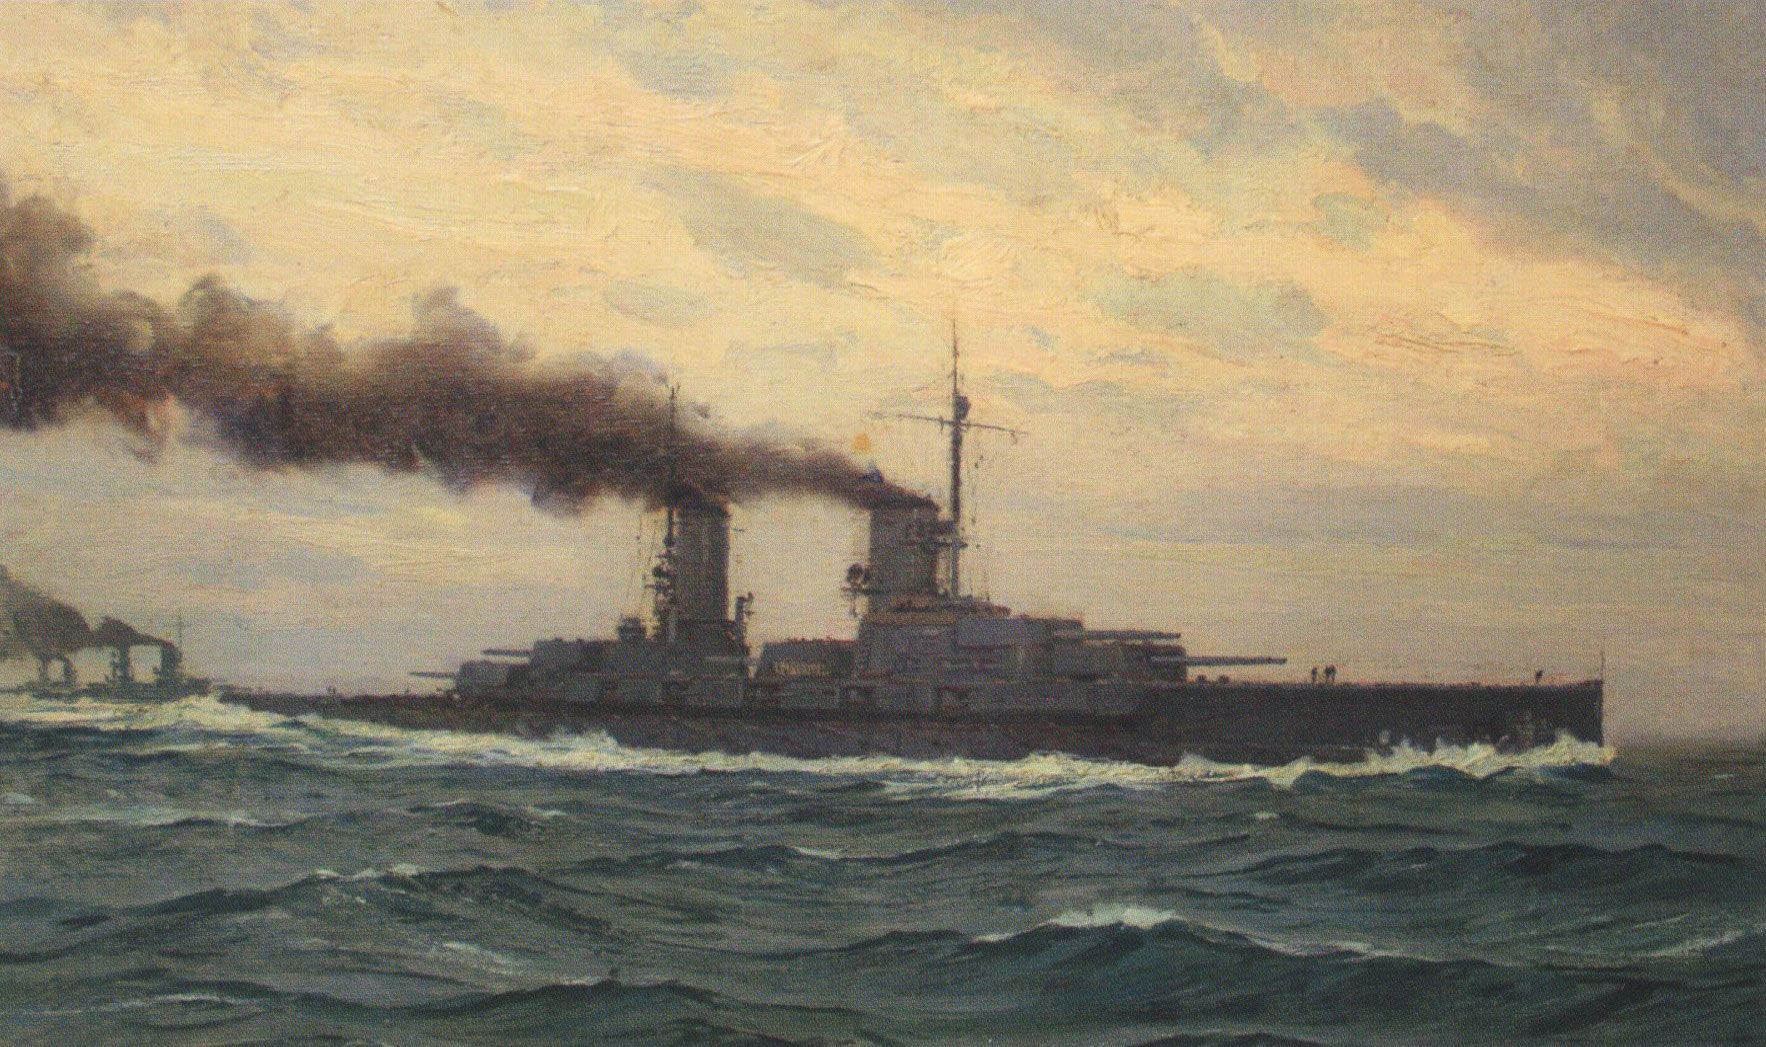 German Battleship SMS Markgraf: Markgraf fought at the Battle of Jutland on 31st May 1916 in the 5th Division of Rear-Admiral Behncke's 3rd Squadron: picture by Claus Bergen